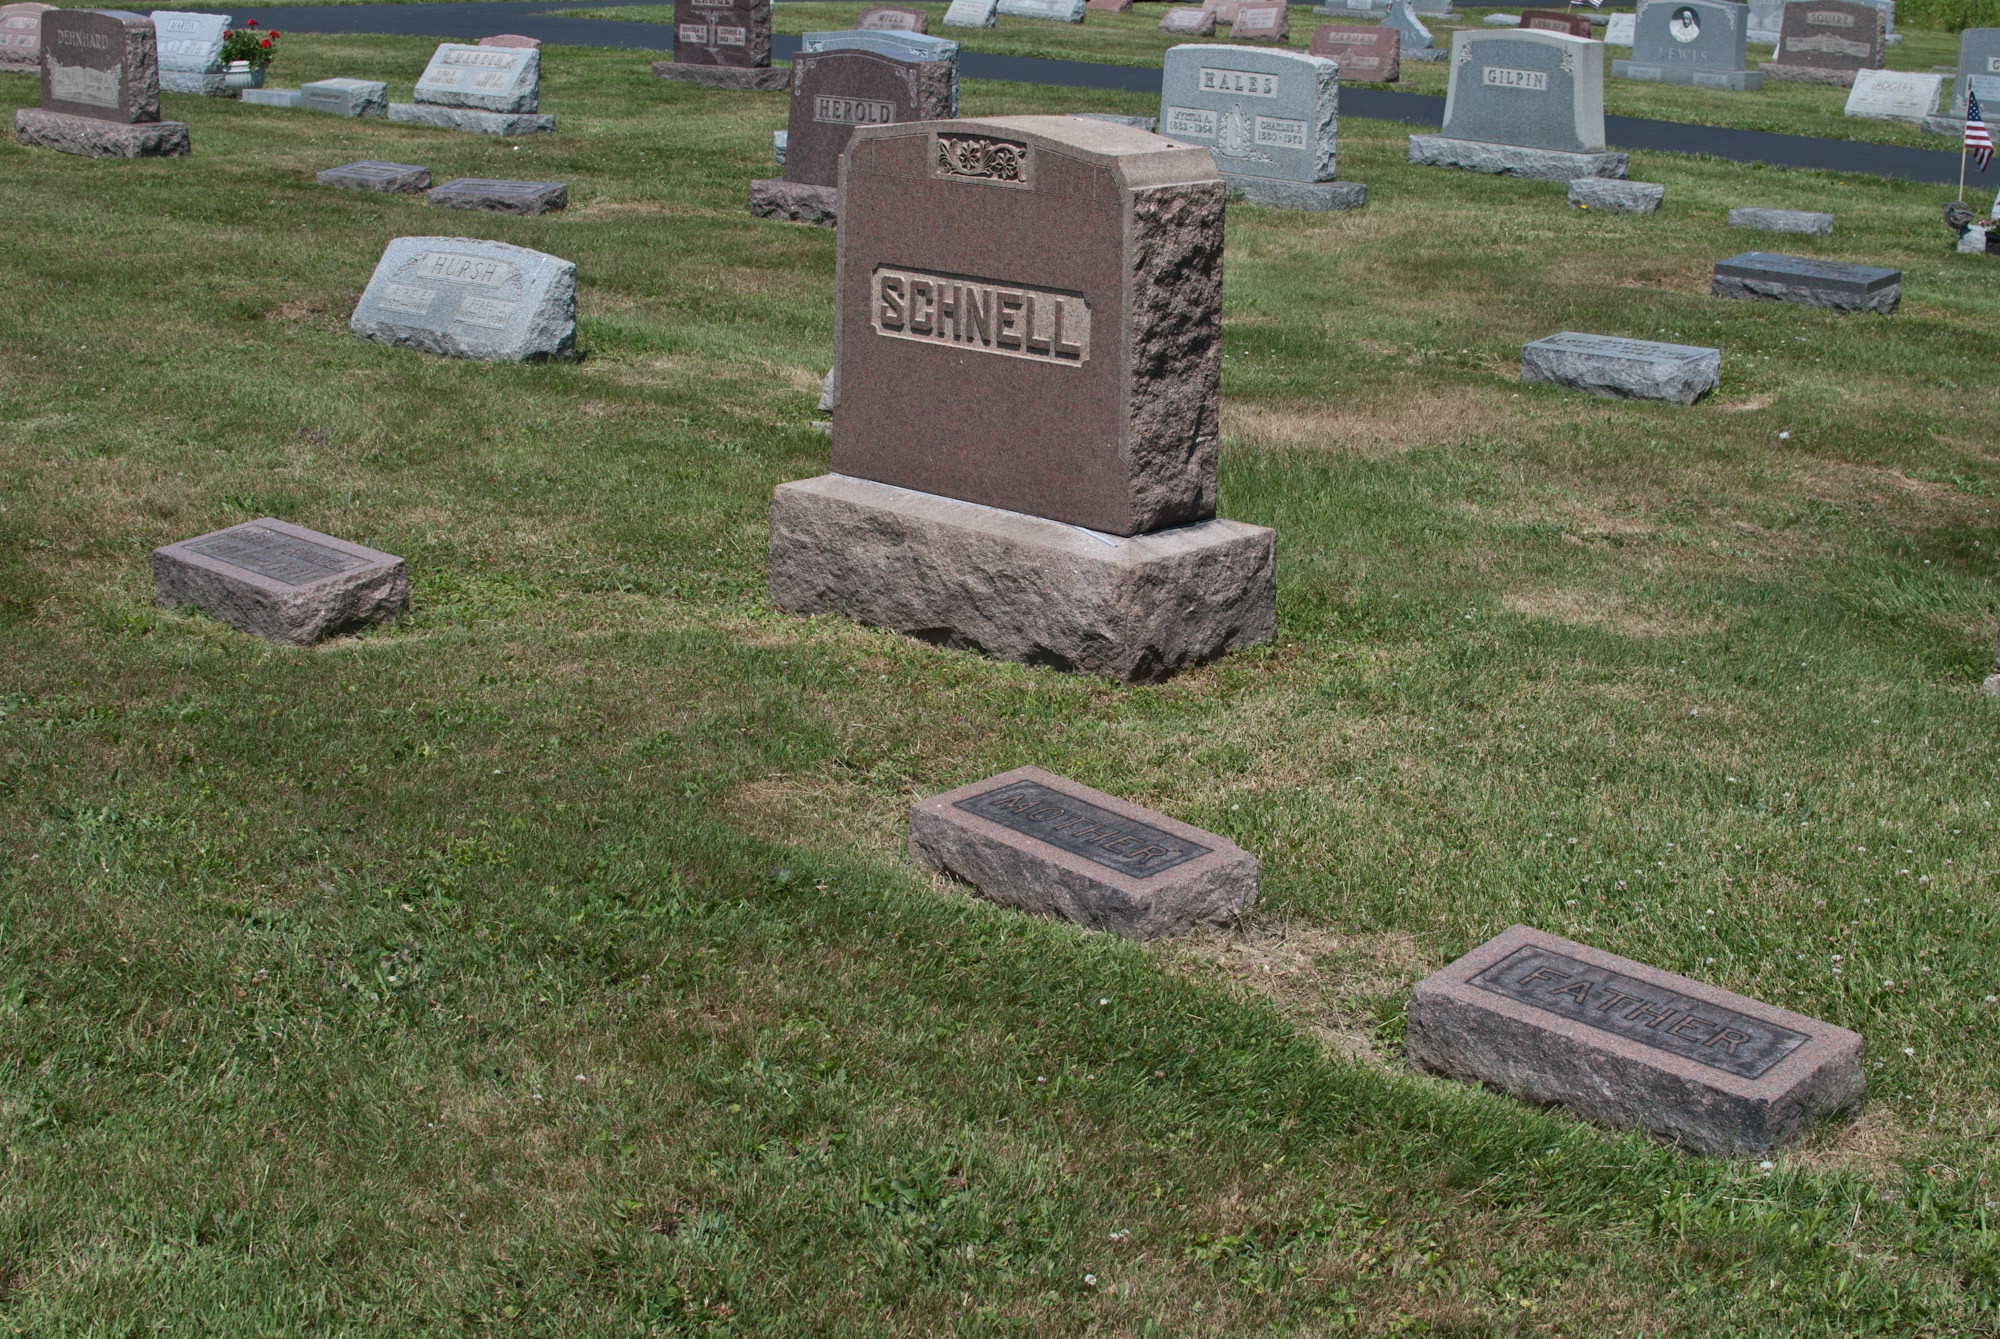 Schnell Family Gravesite in Columbia Cemetery